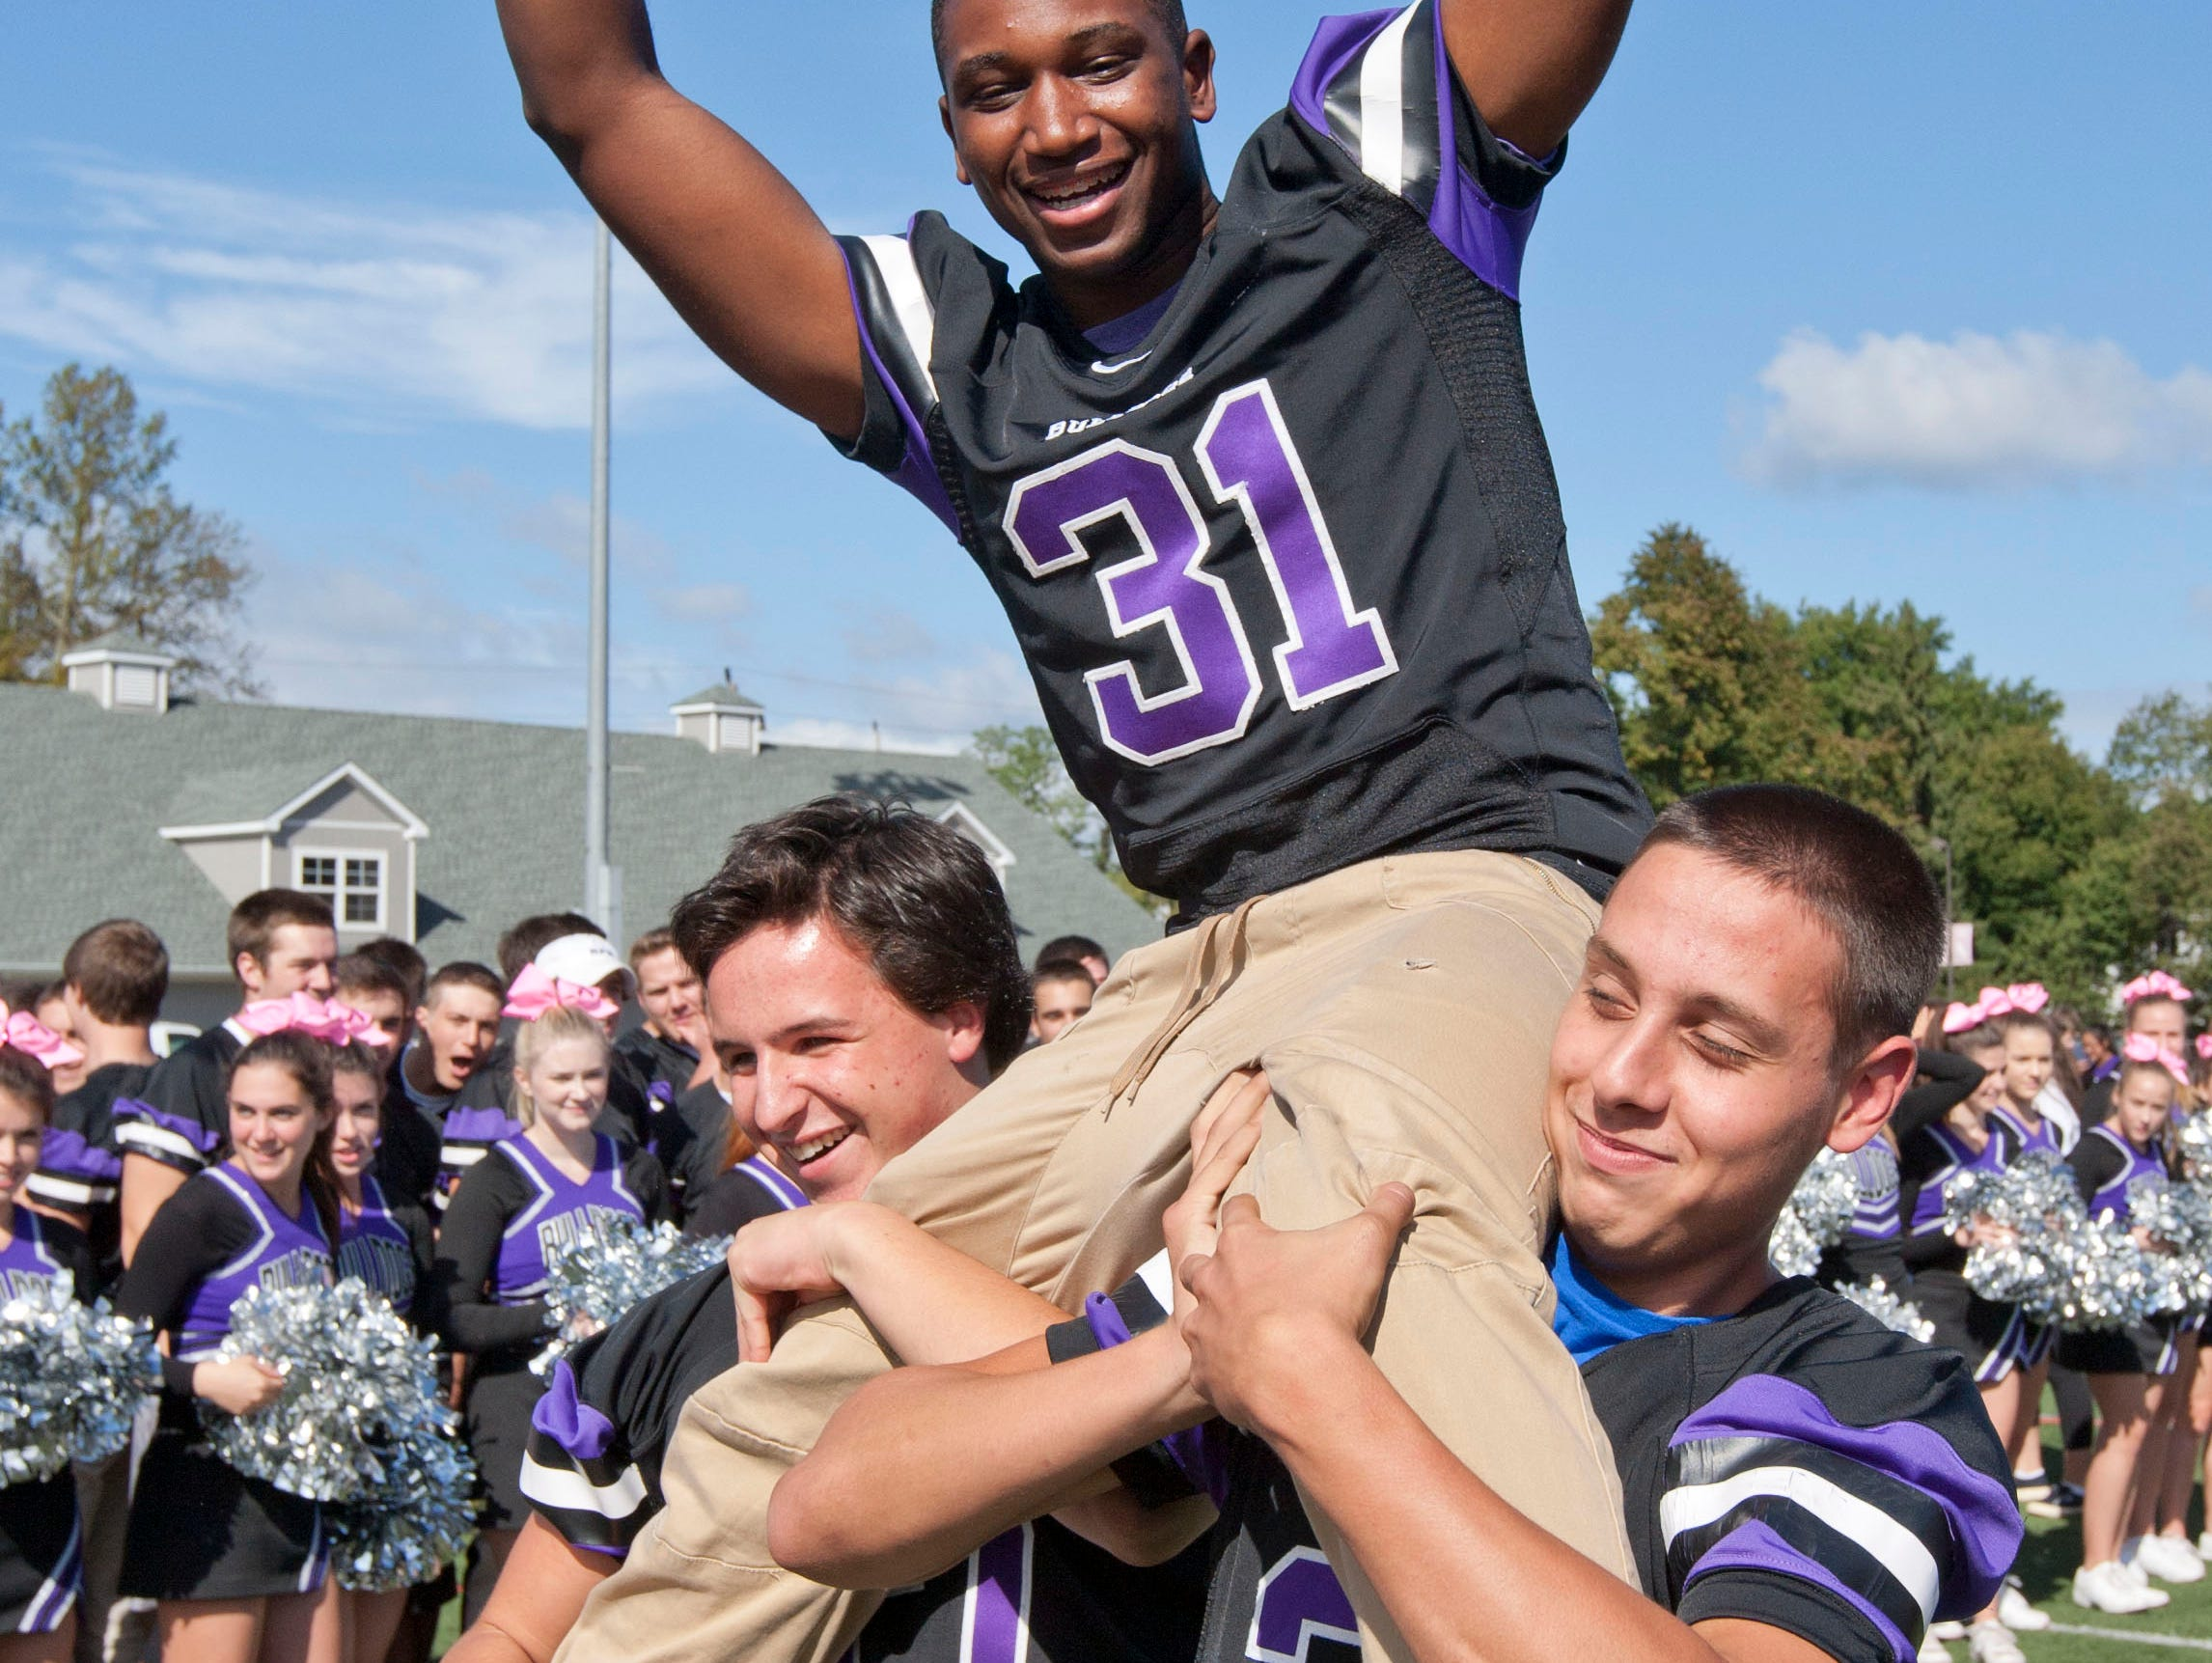 The Red Zone Road Show at Rumson HS in advance of the Rumson-Long Branch football game -October 5, 2015-Rumson, NJ.-Staff photographer/Bob Bielk/Asbury Park Press